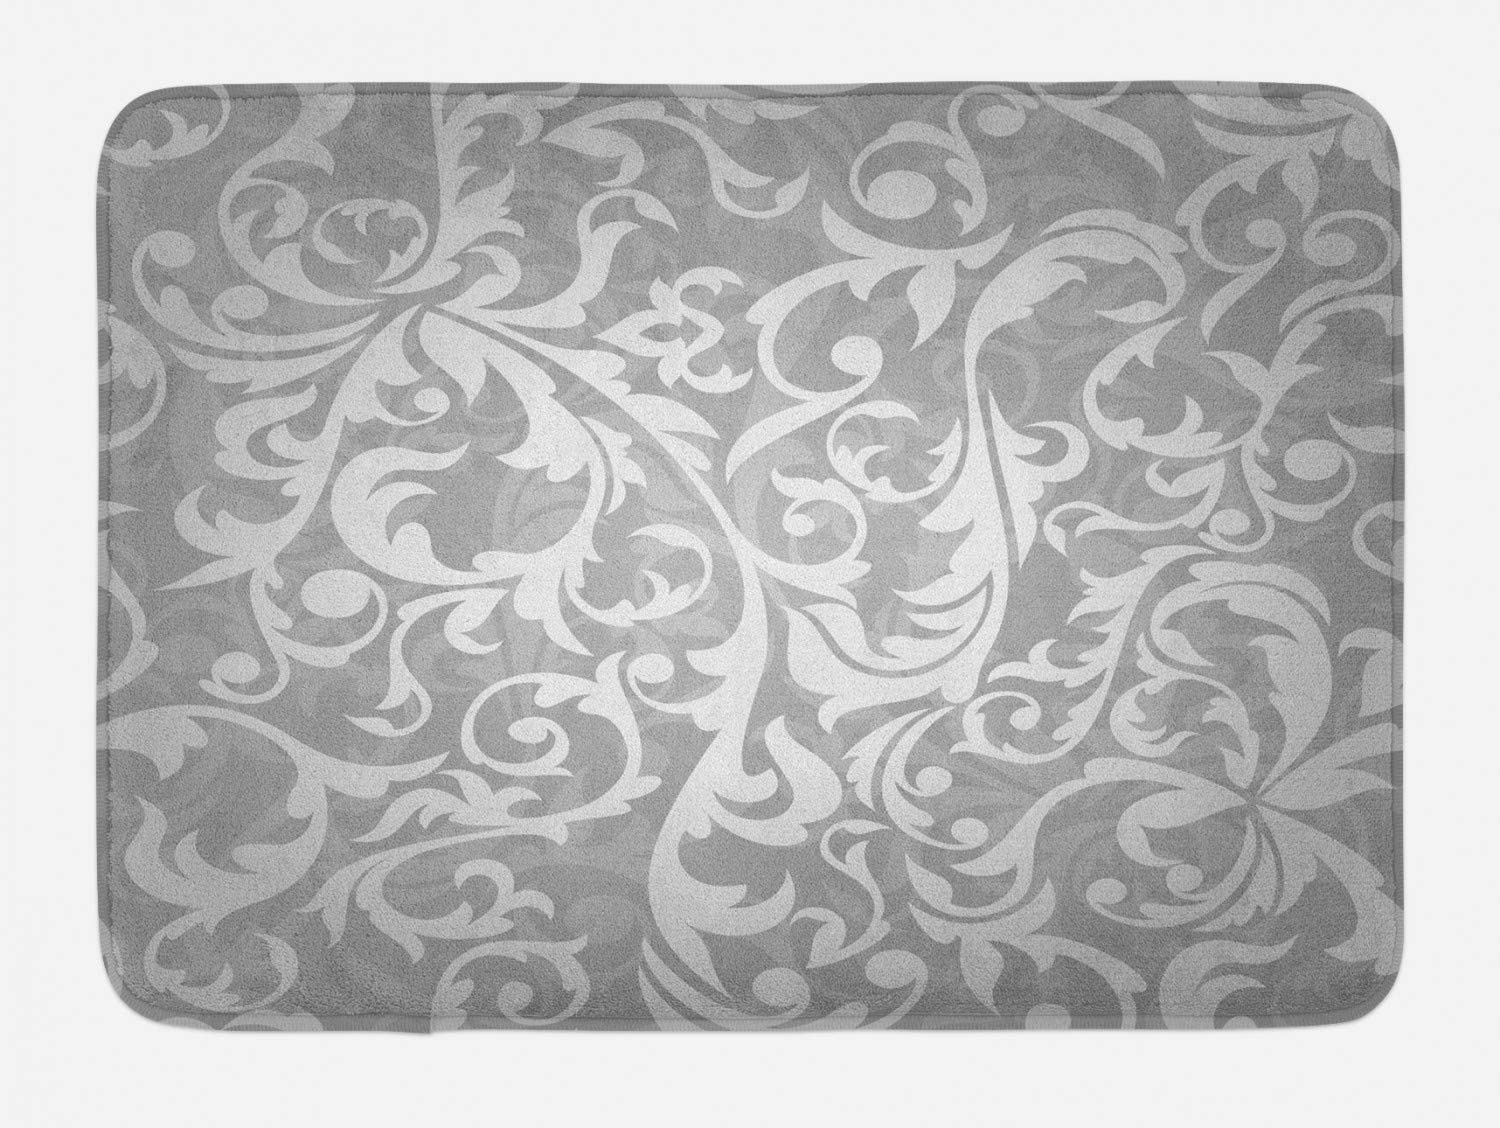 Ambesonne Grey Bath Mat, Victorian Style Large Leaf Floral Pattern Swirl Classic Abstract French Vintage Print, Plush Bathroom Decor Mat with Non Slip Backing, 29.5